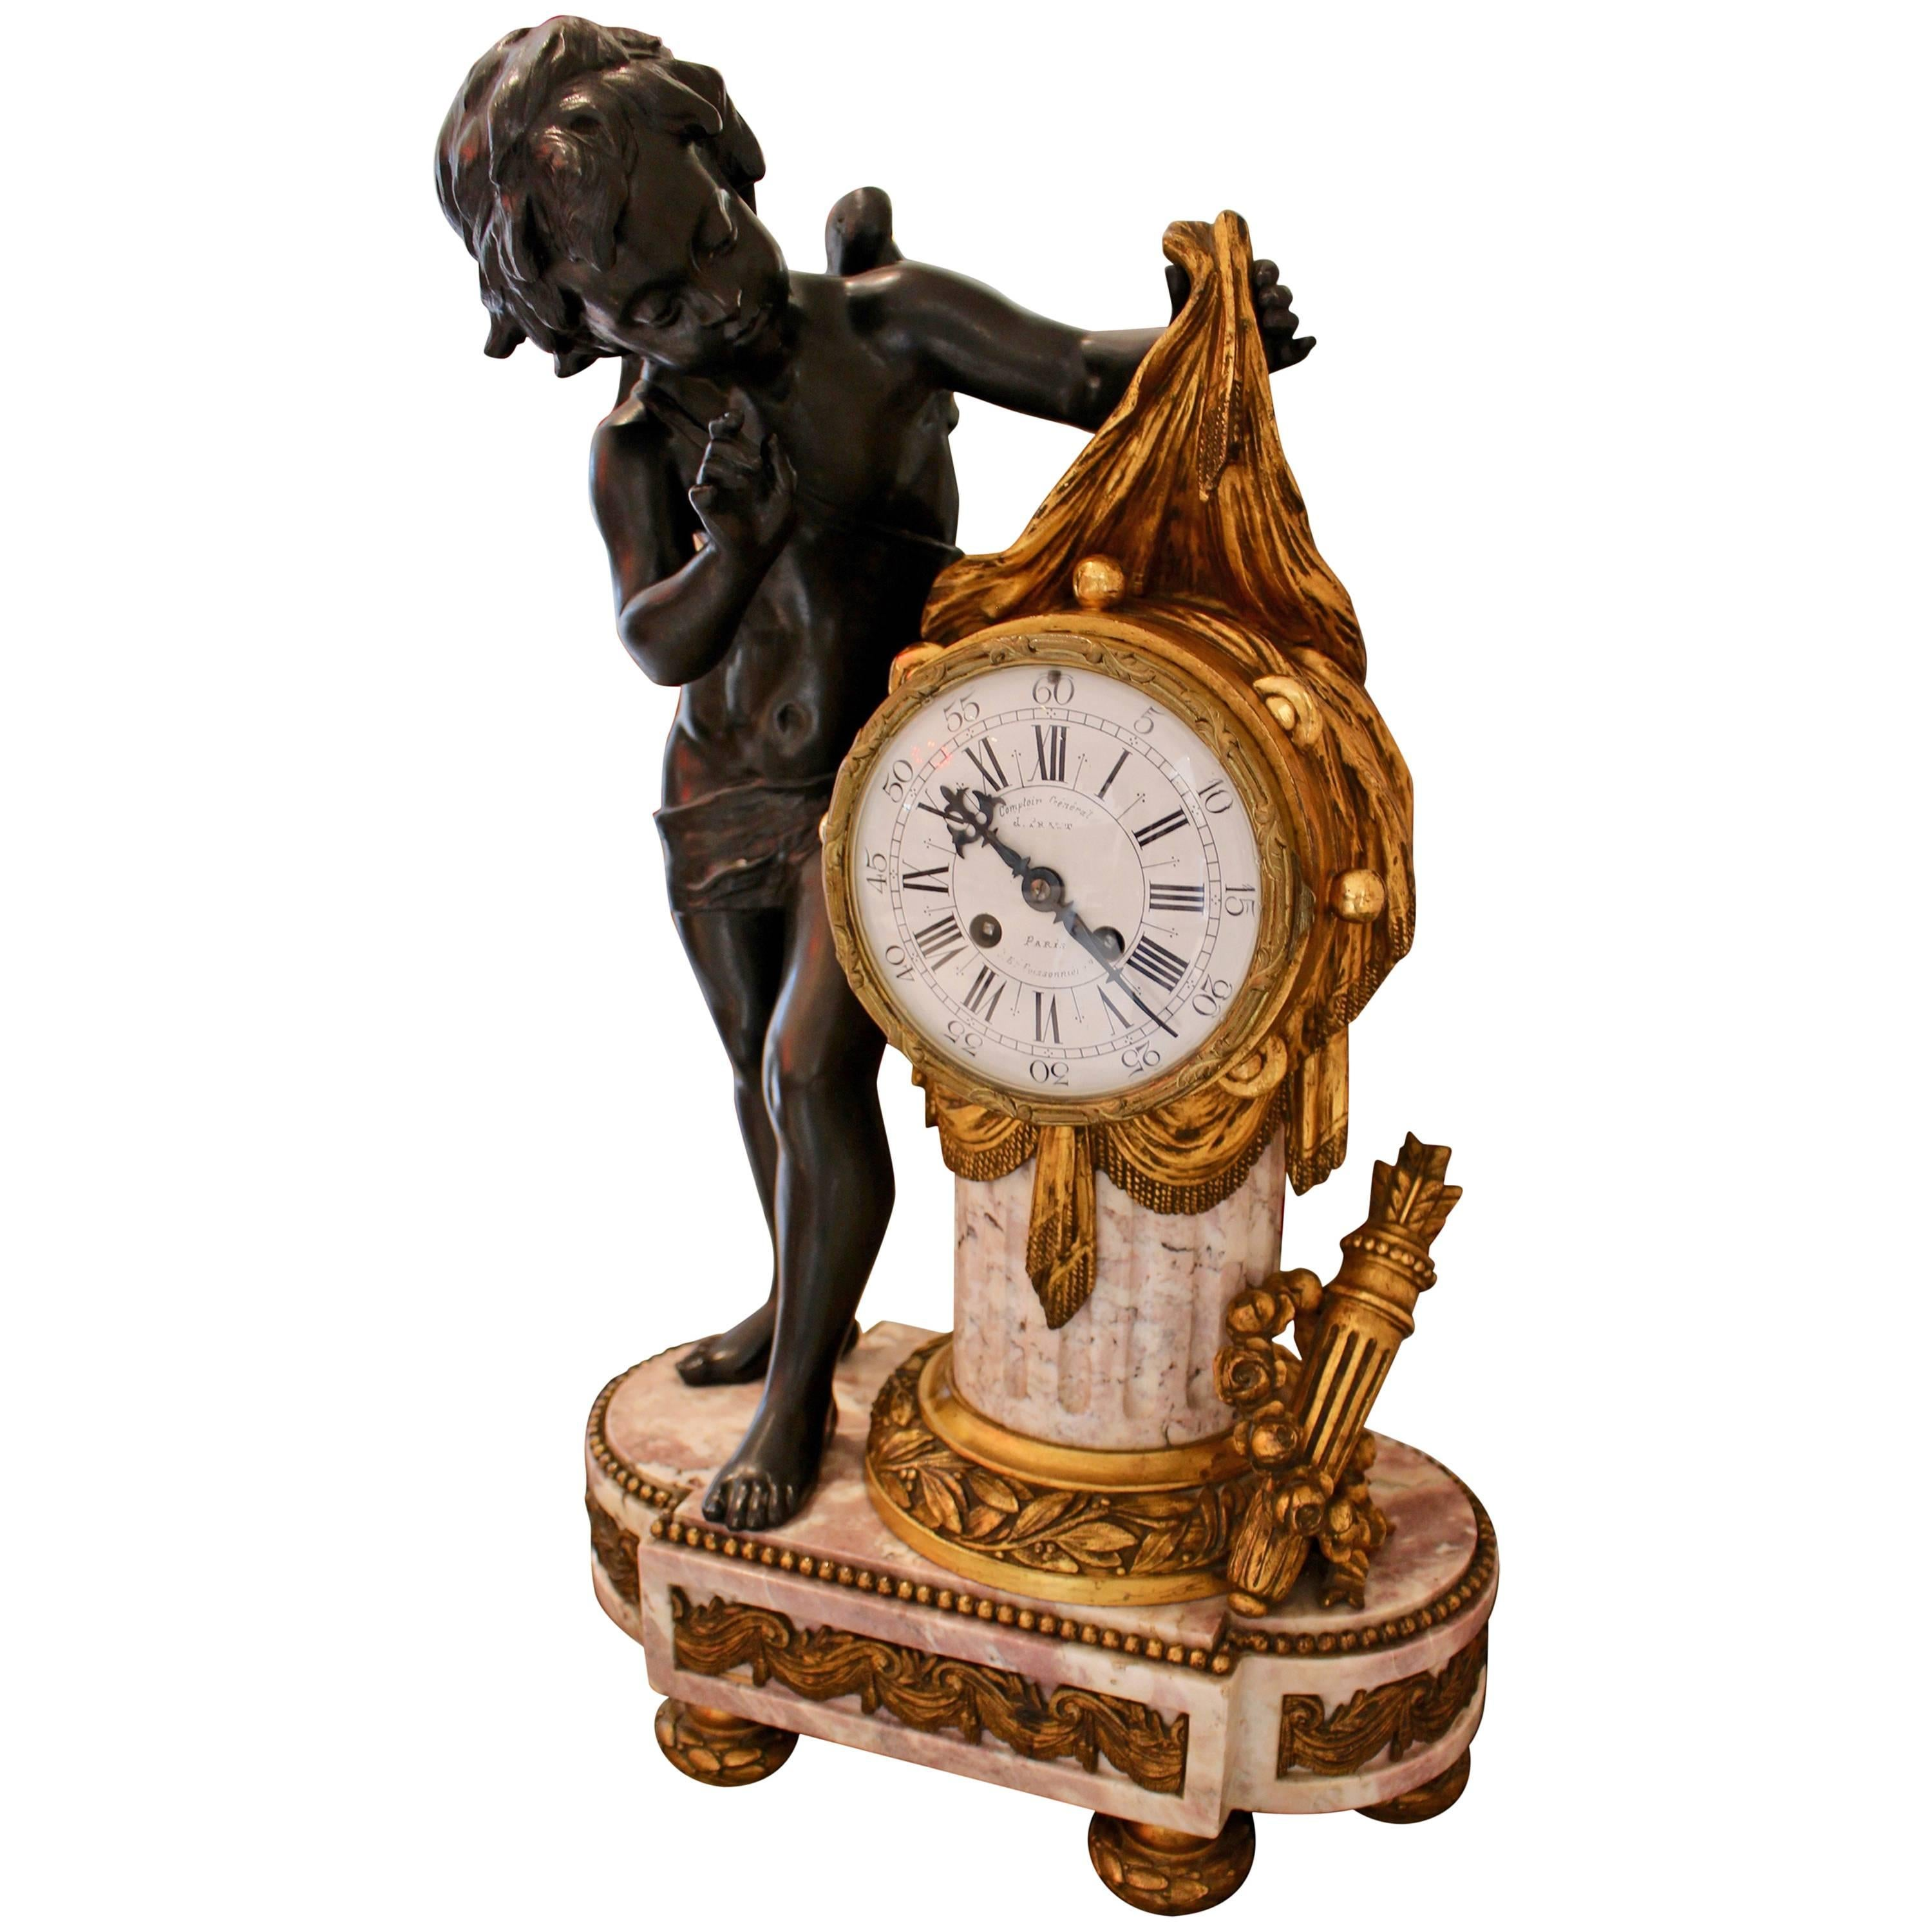 French Louis XVI Period Marble and Gilt-Bronze Mantle Clock with Playful Cupid